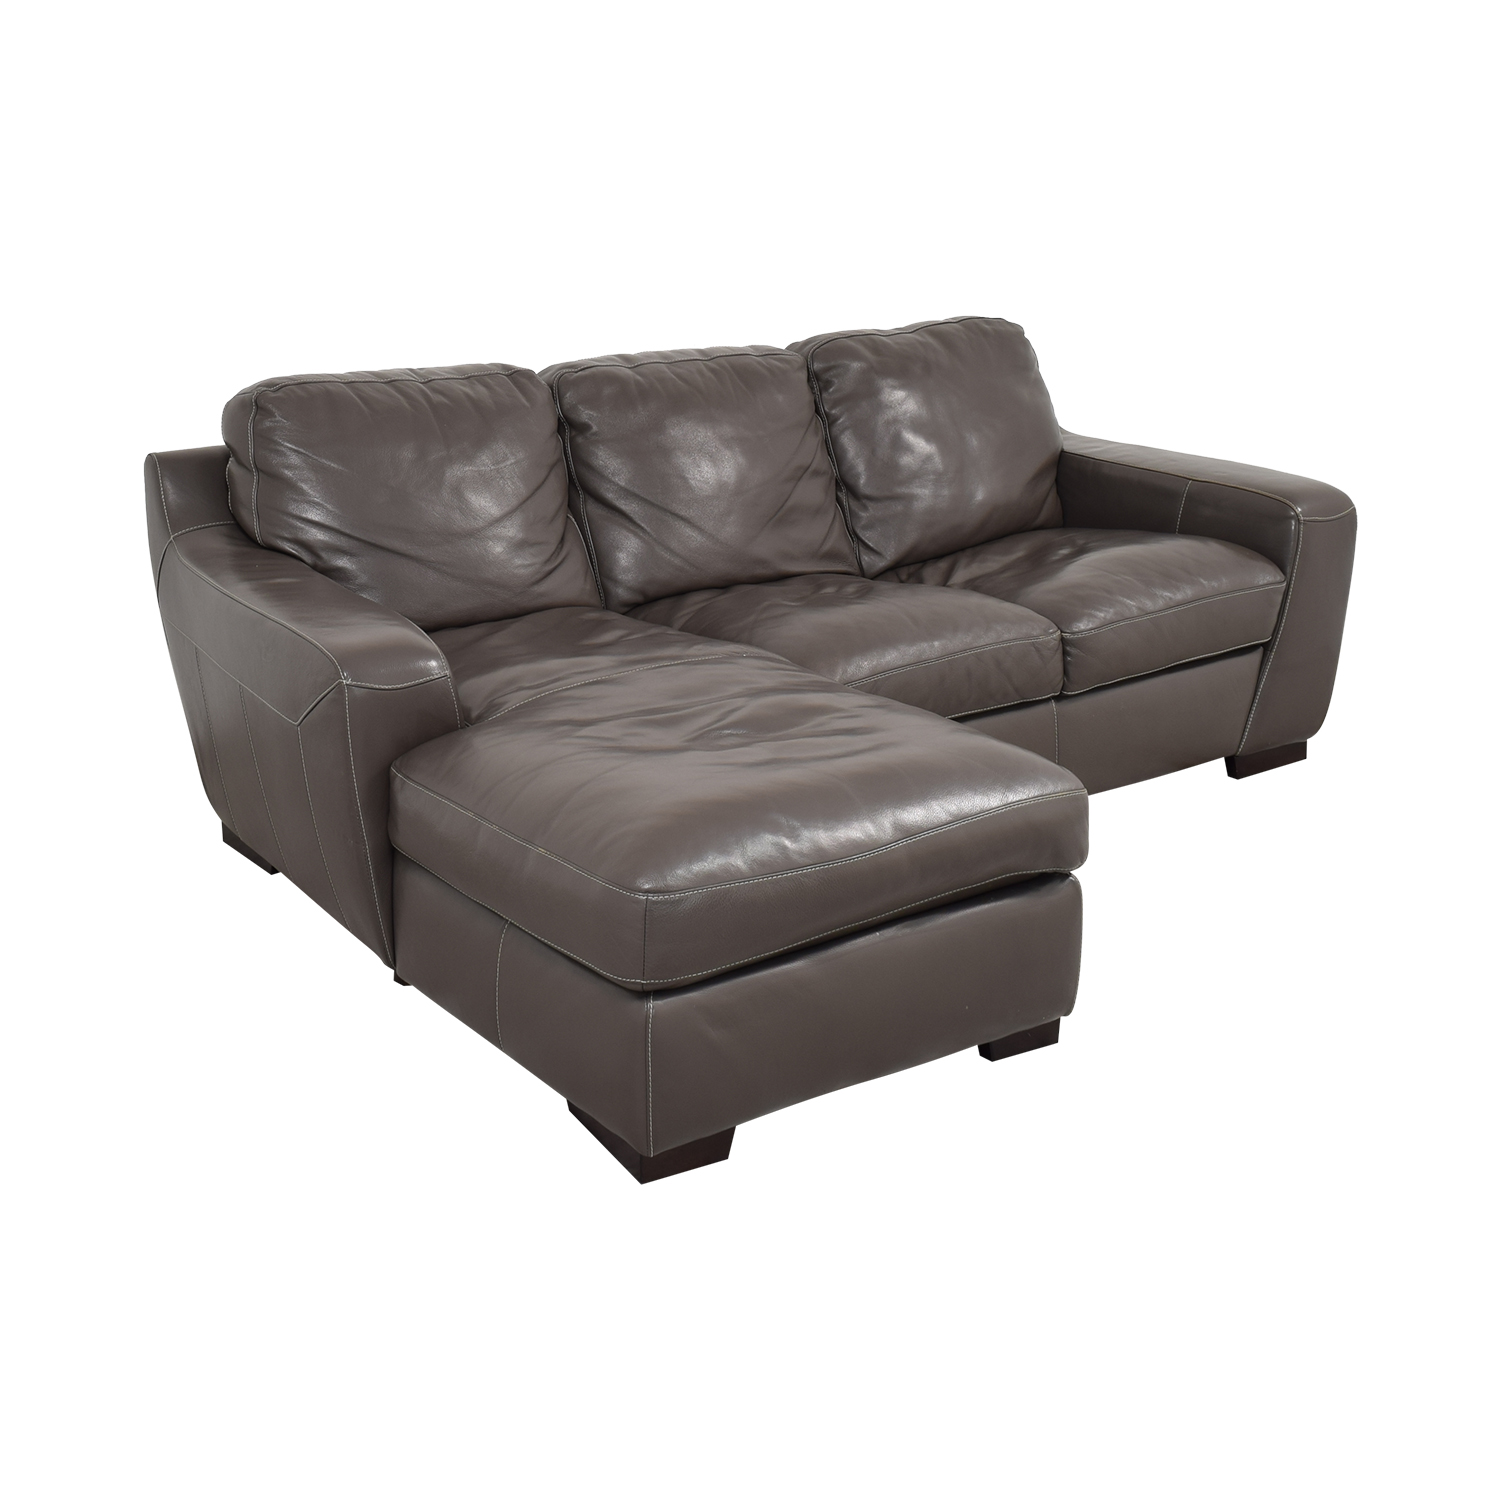 Raymour & Flanigan Leather Sectional Sofa / Sectionals